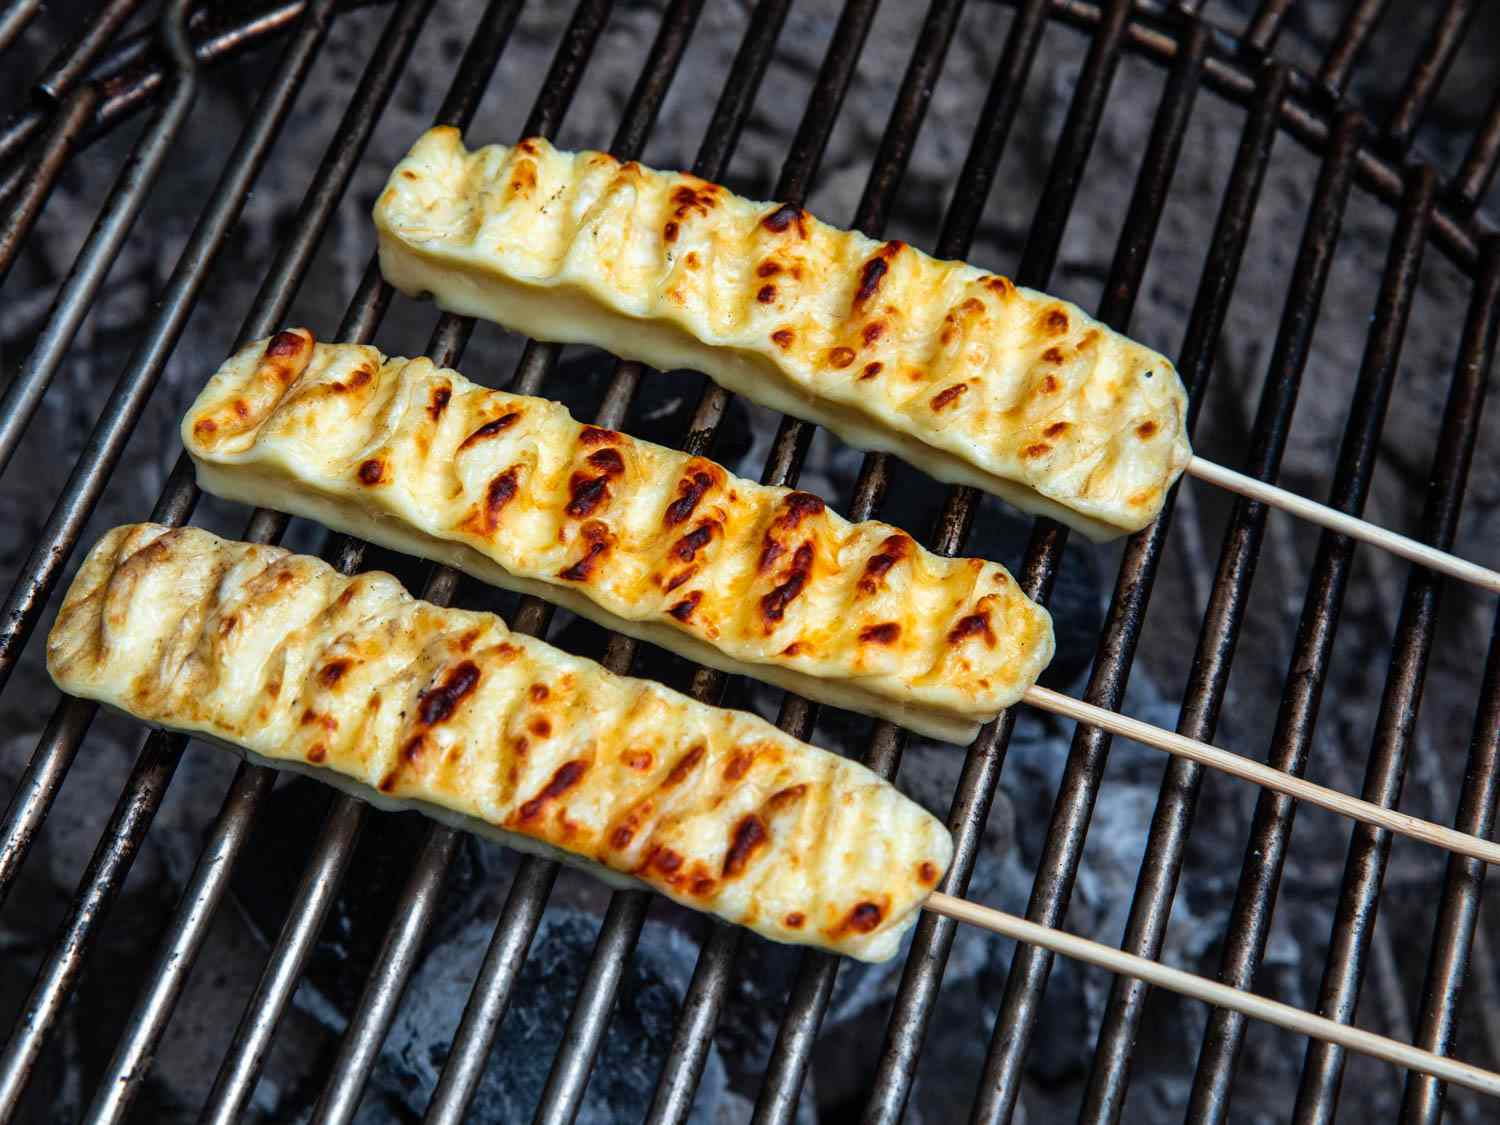 20190620-queijo-coalho-brazilian-grilled-cheese-skewers-vicky-wasik-4